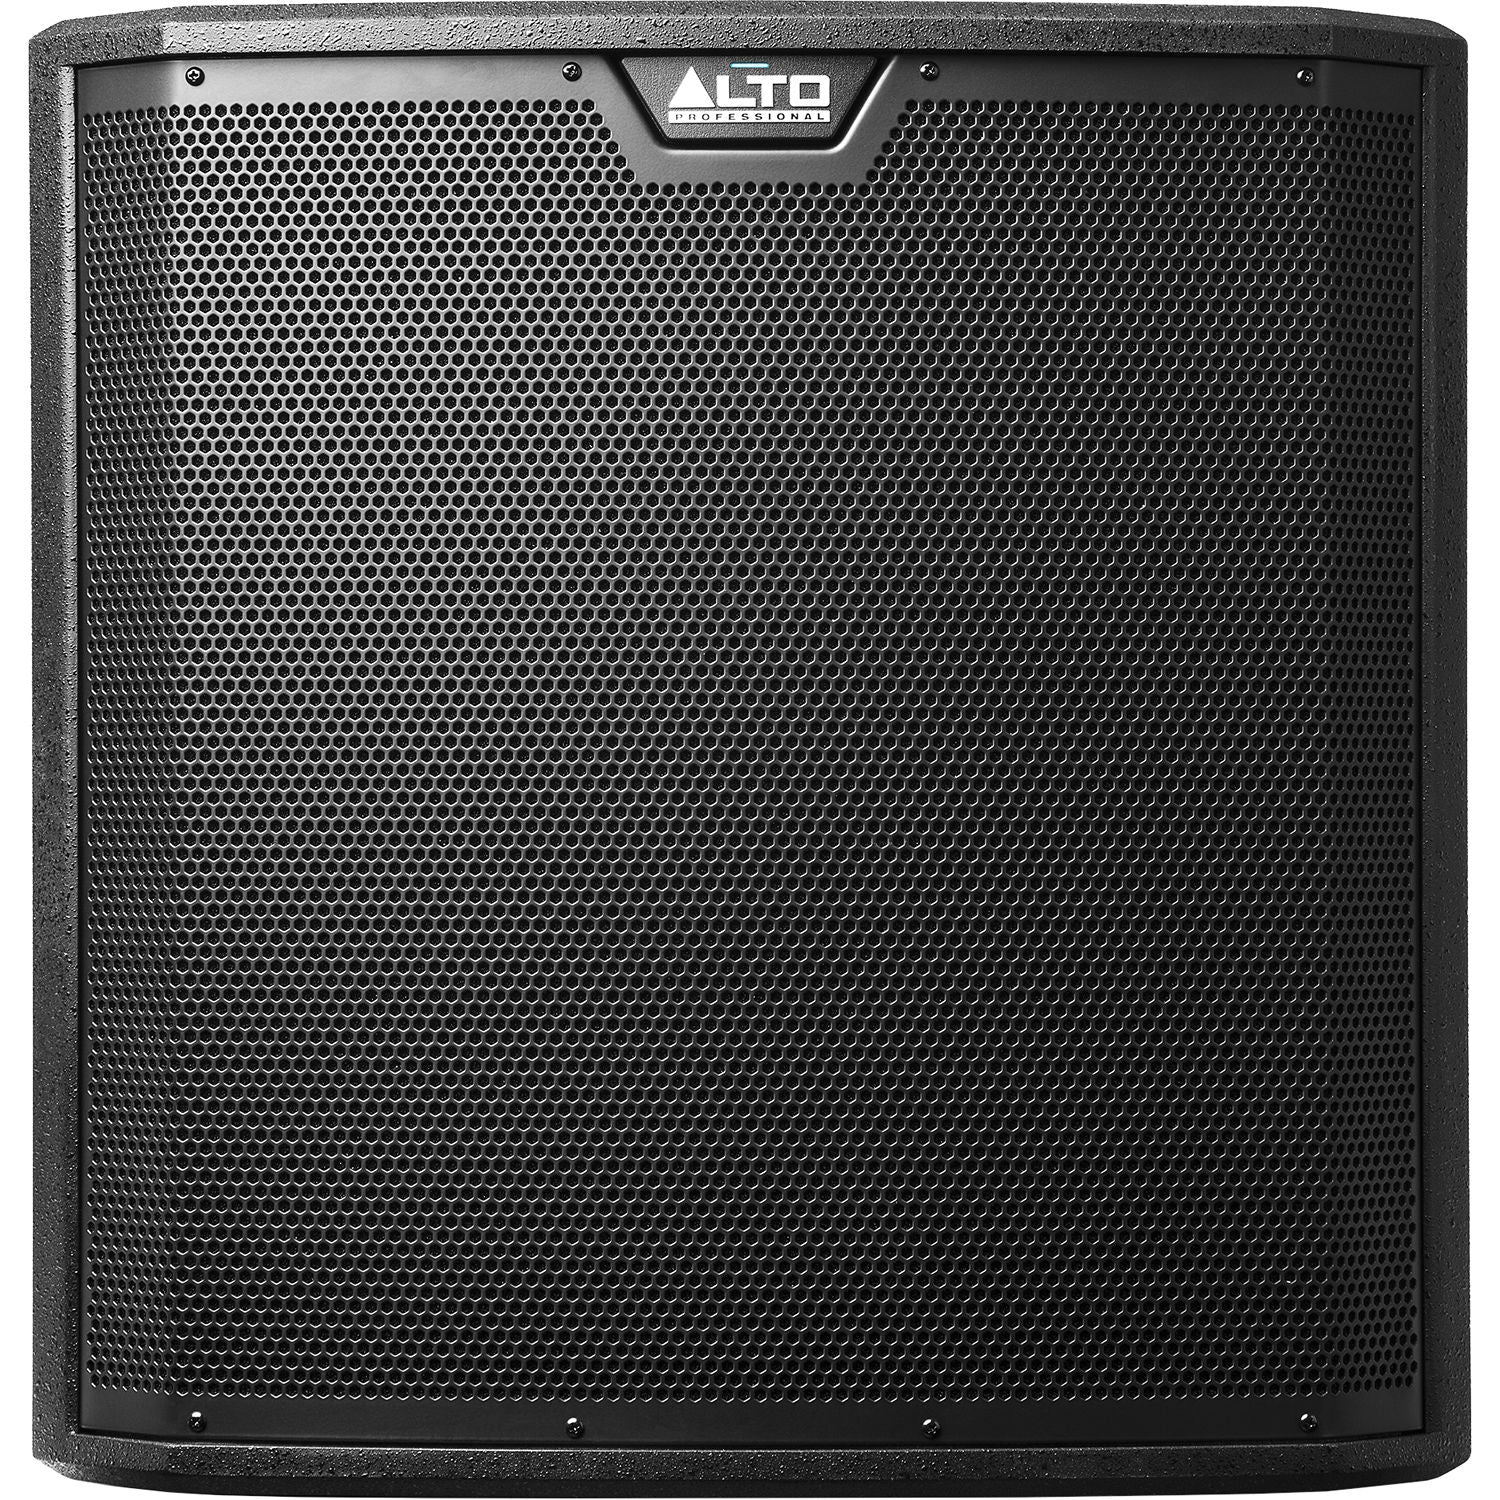 "Alto TS315S Truesonic 2000W 15"" Powered Subwoofer 